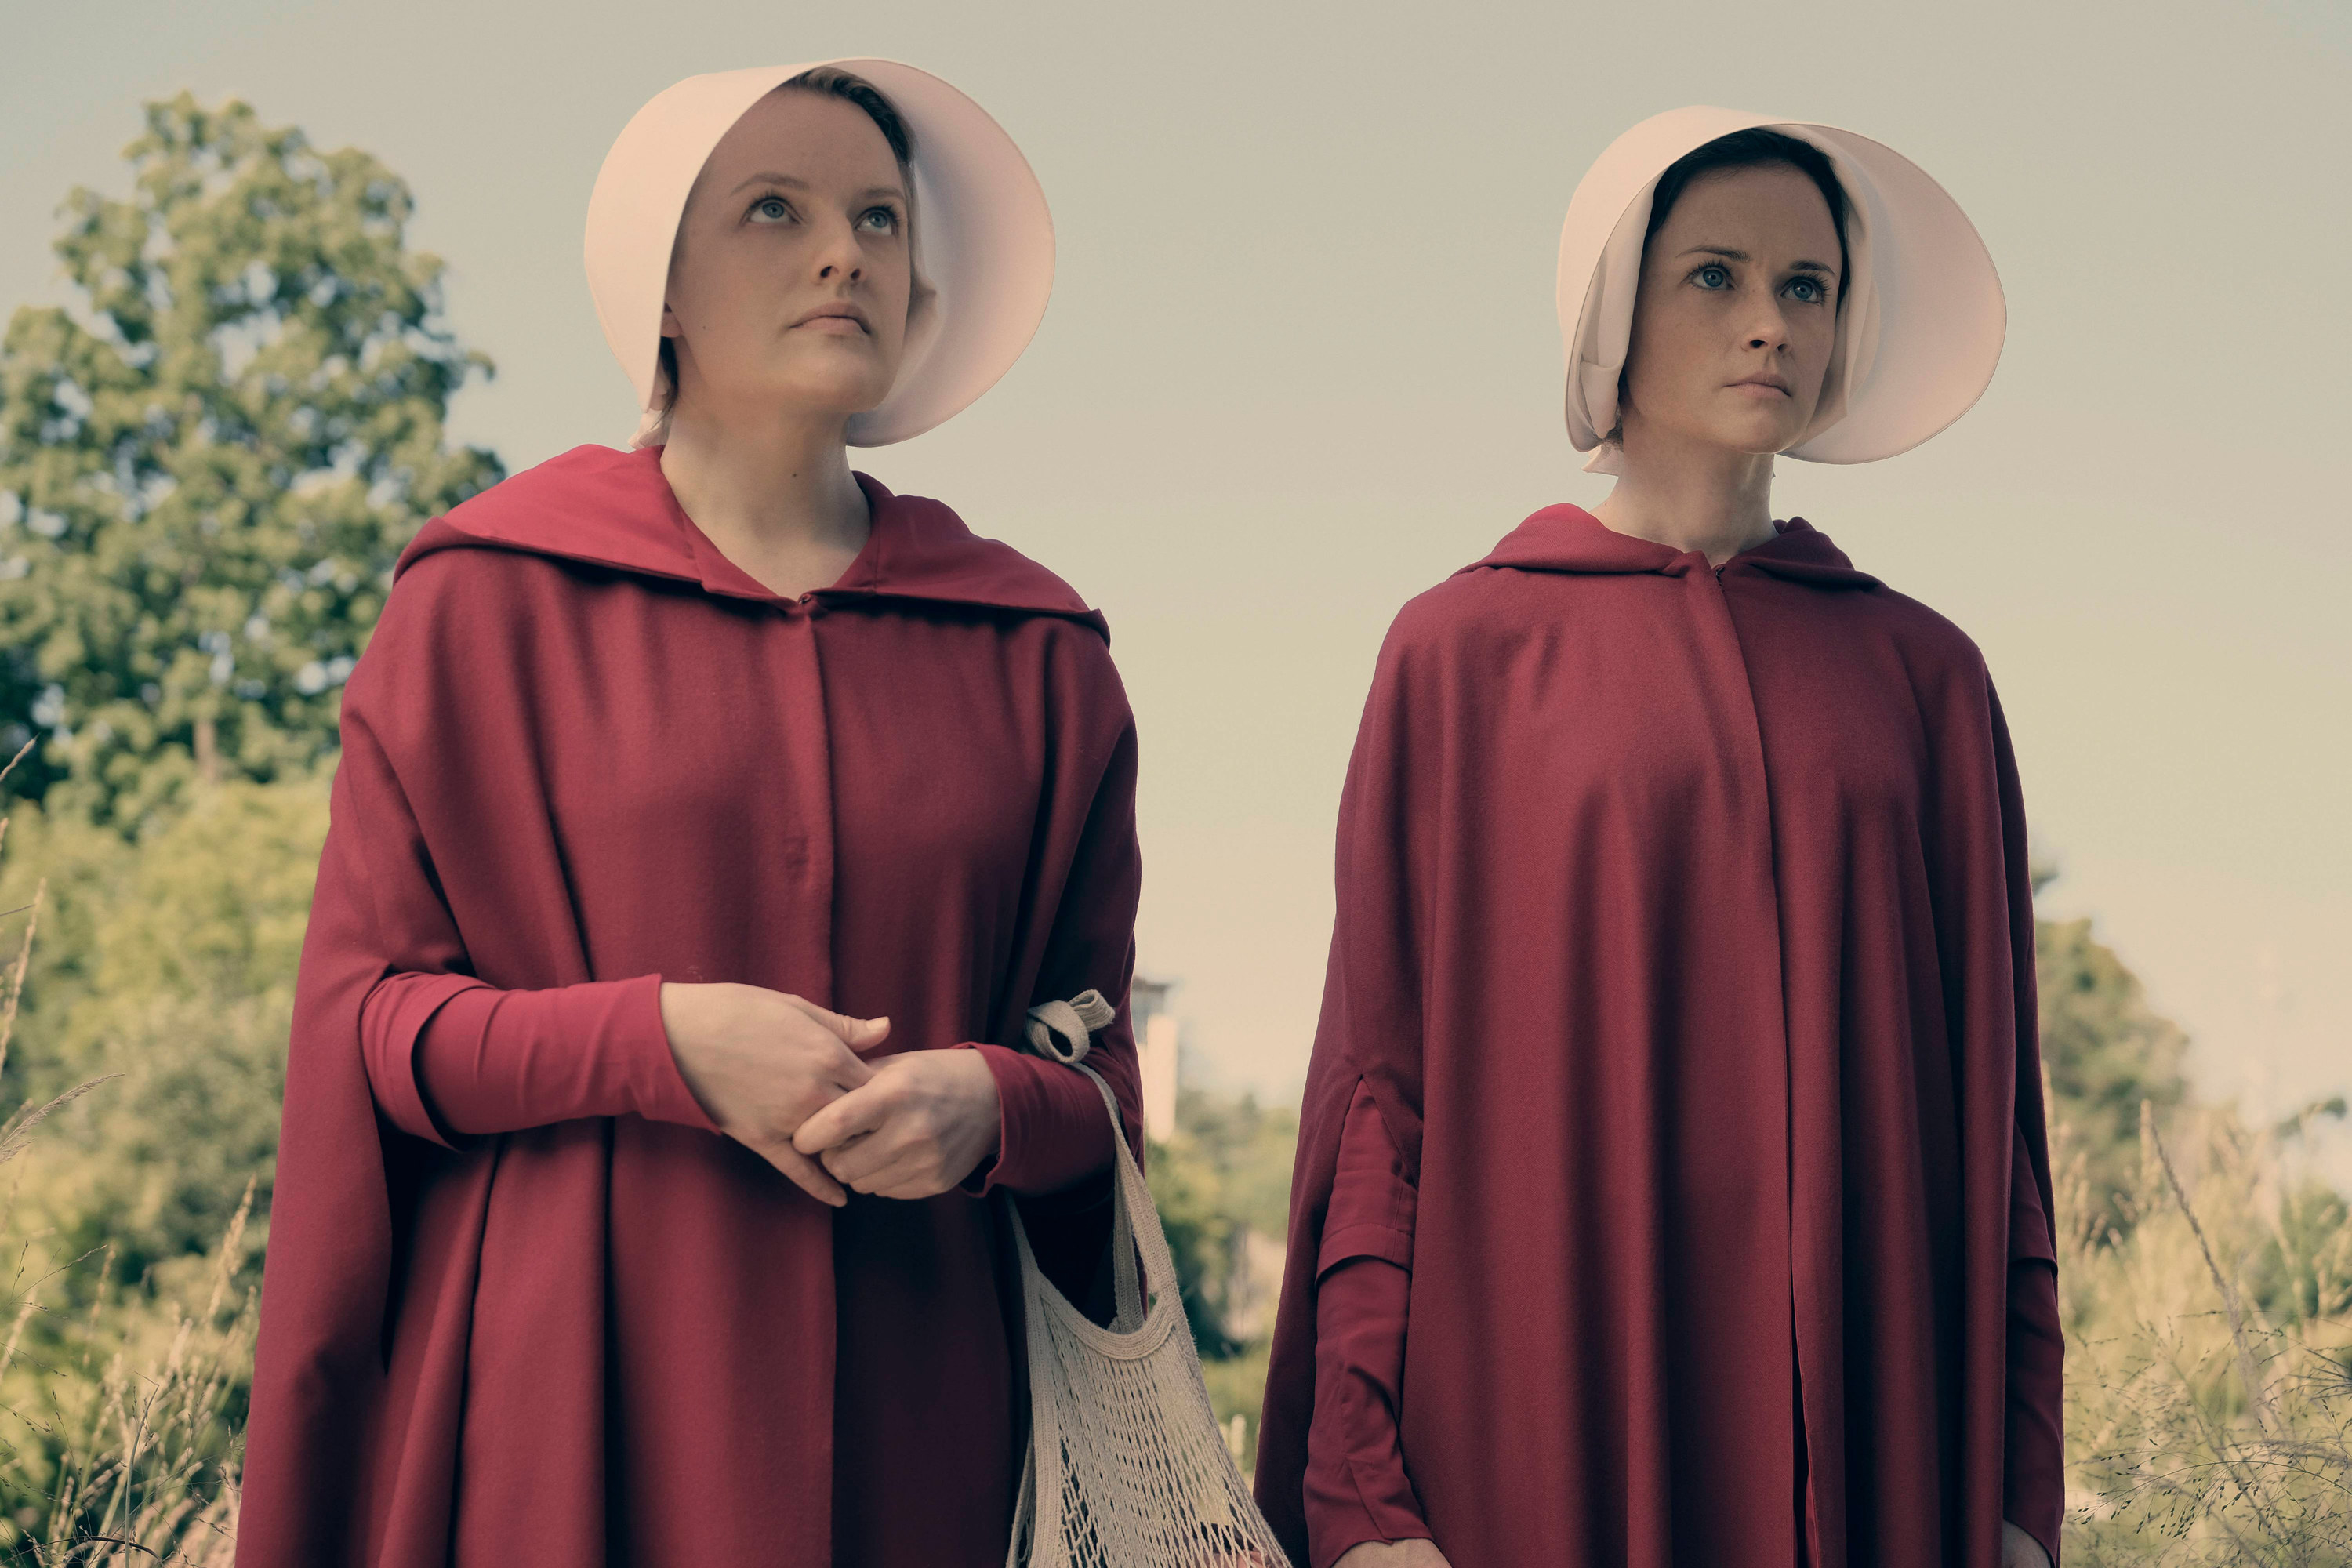 Elisabeth Moss and Alexis Bledel in red cloaks